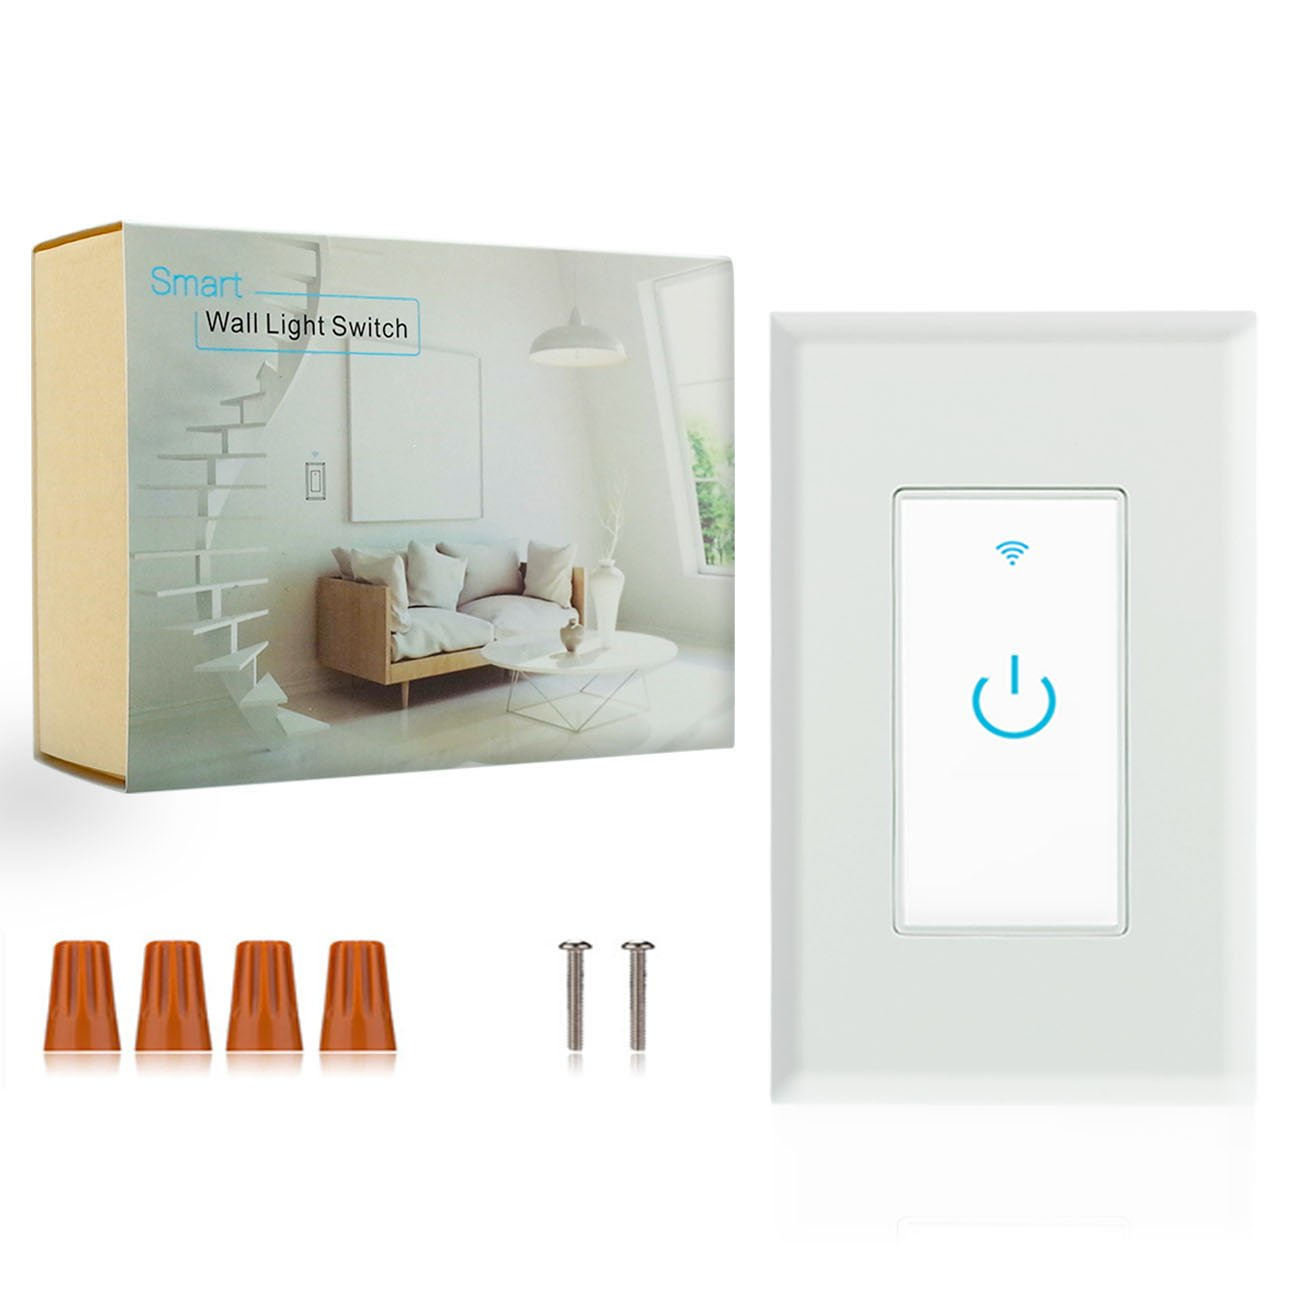 Wifi Smart Switch, Wifi Light Switch 2 Packs, Works with Amazon Alexa and Google Home, App Remote Control with Timing Funtion, No Hub Required (Neutral Wire Required) by Lesim (Image #6)